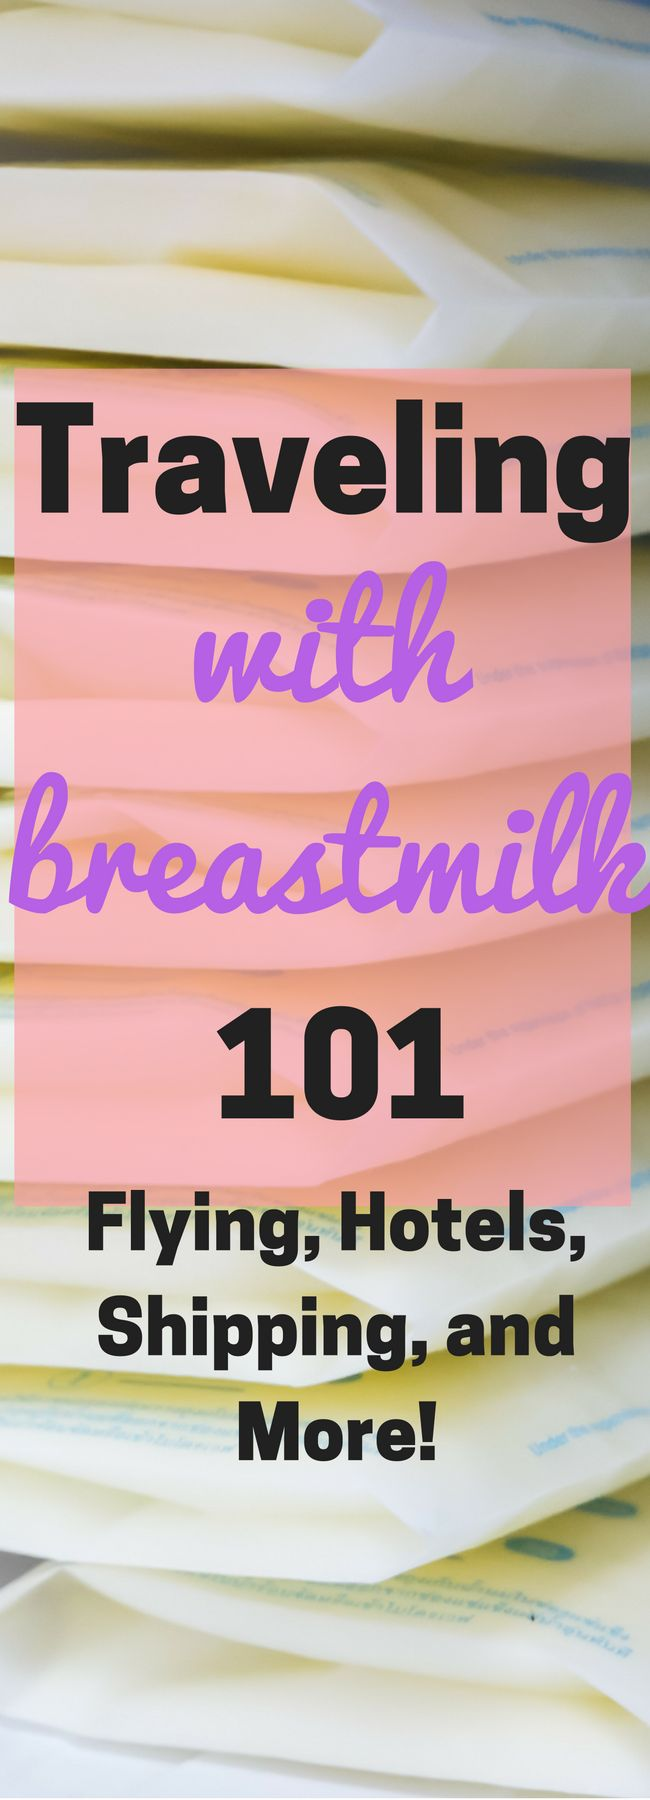 Tips for traveling, flying, shipping, and staying in hotels with breastmilk!